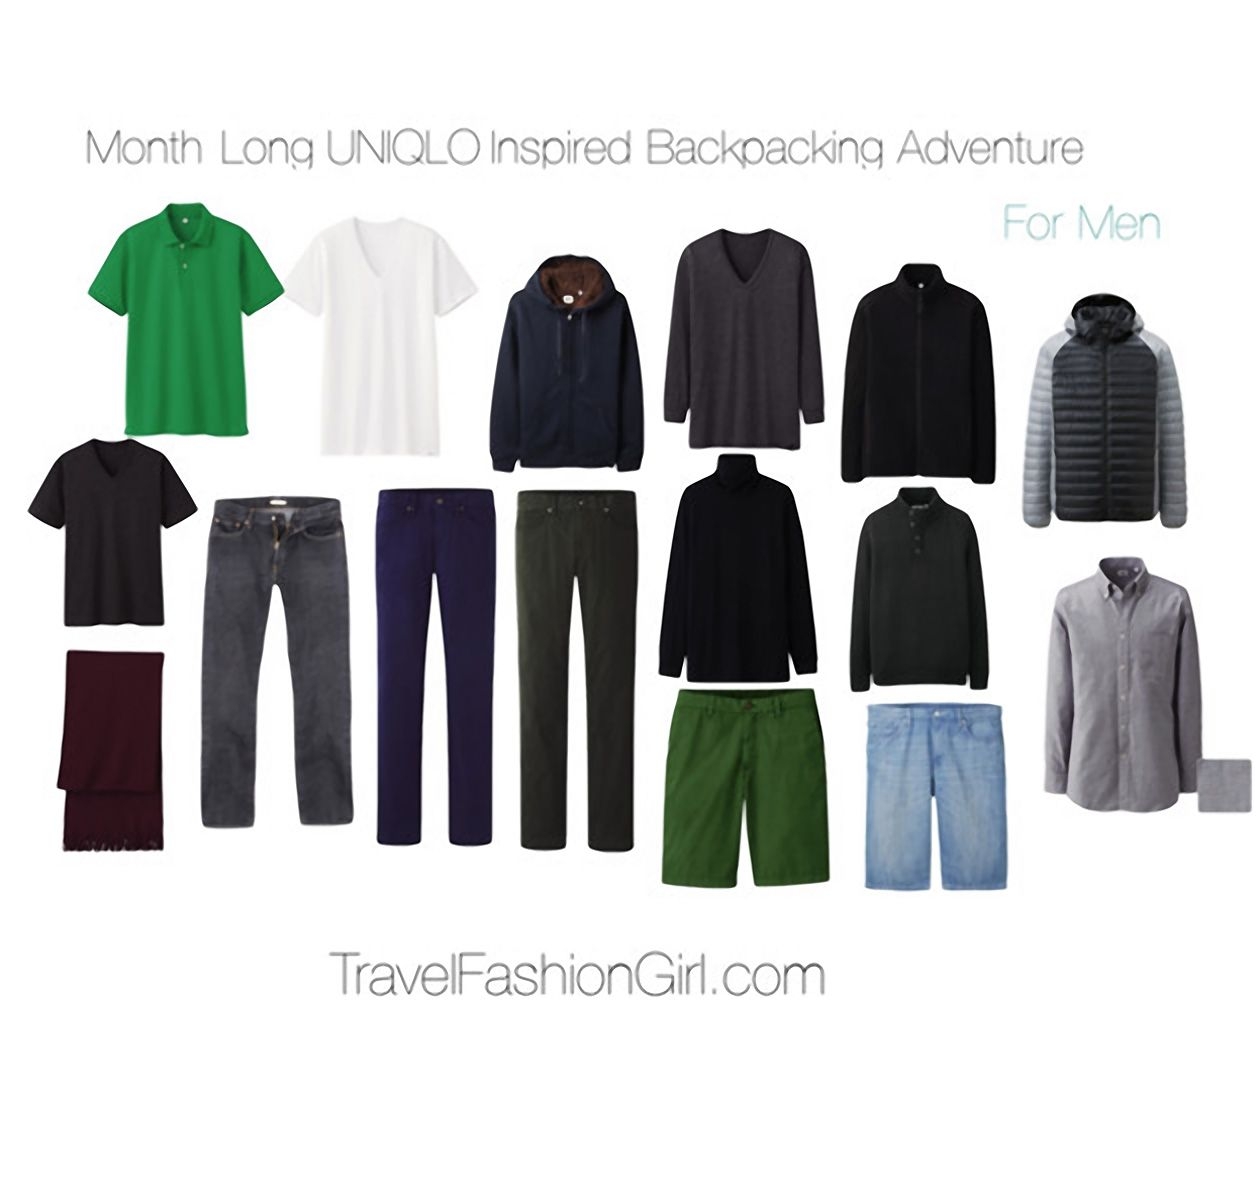 Ultralight Warmth Uniqlo 30 Day Packing List Travel Outfit Winter Travel Outfit Travel Essentials Men